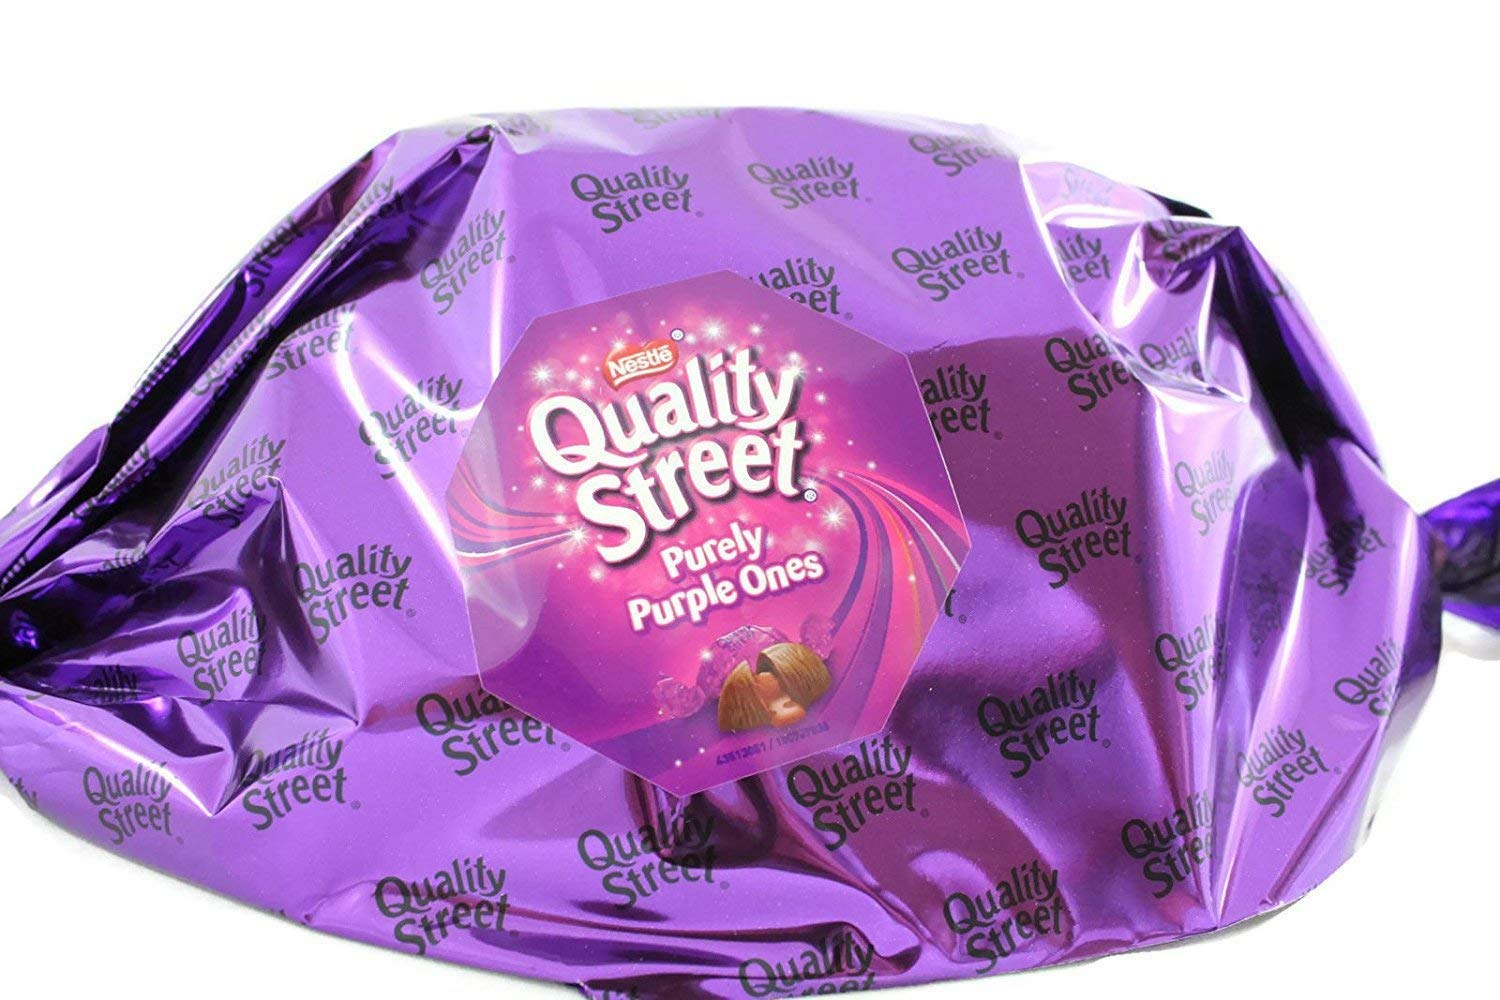 Nestlè - Quality Street - Purely Purple Ones - 350g Nestlè COS244192